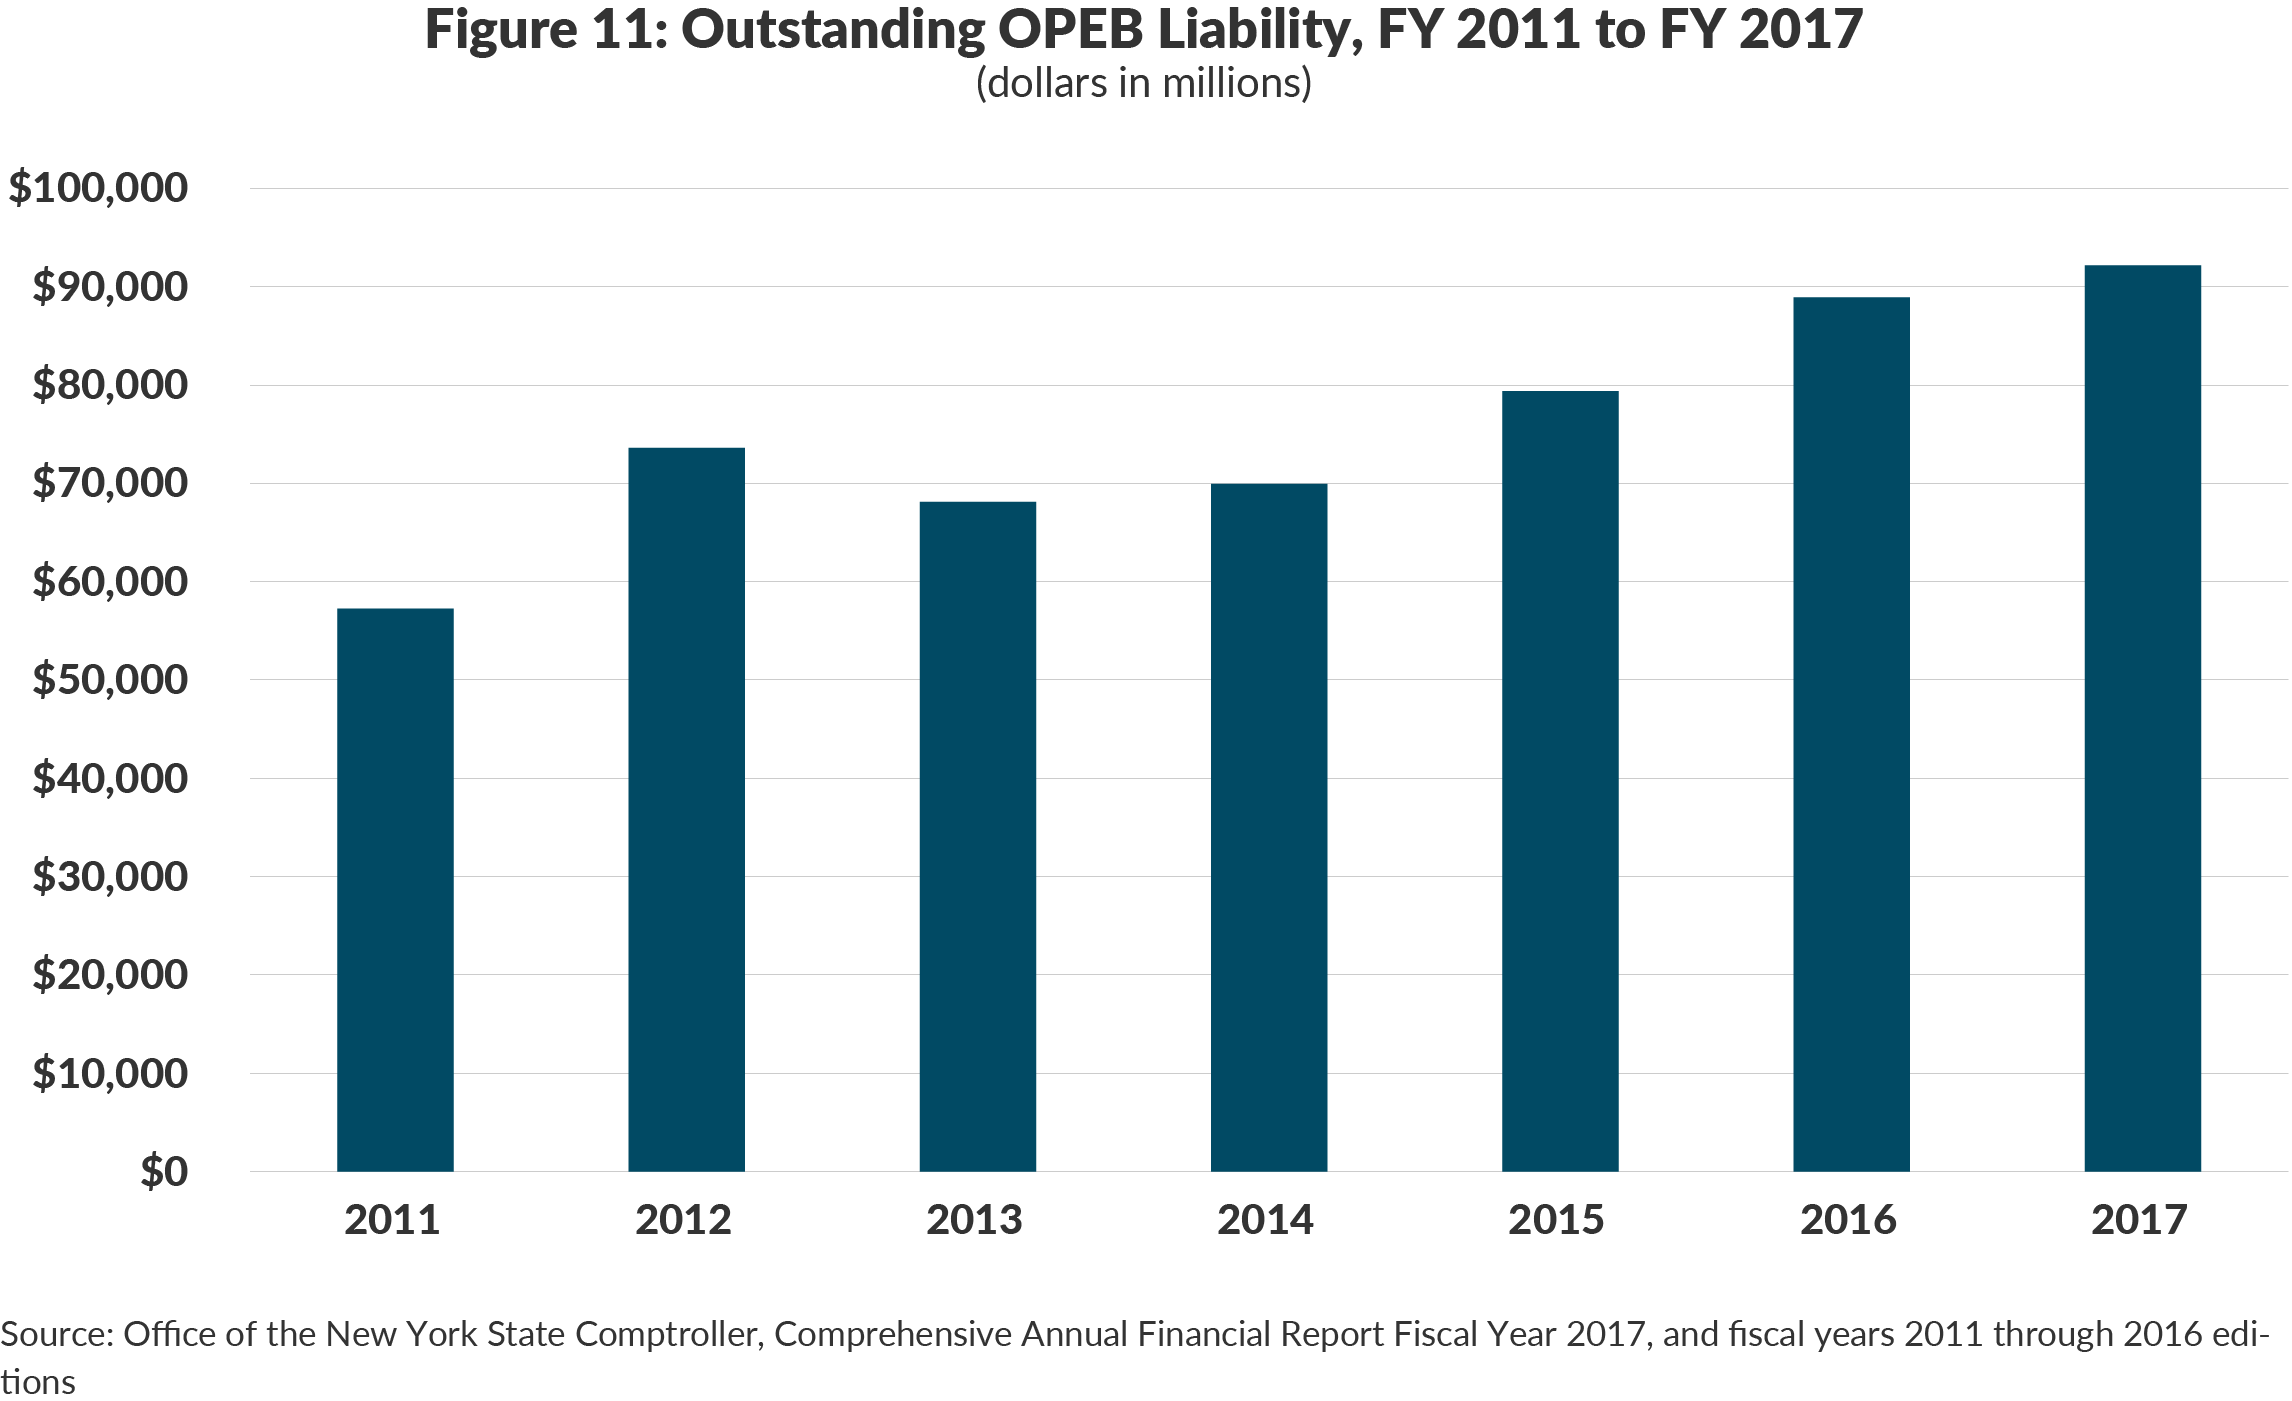 Figure 11: Outstanding OPEB Liability, FY 2011 to FY 2017